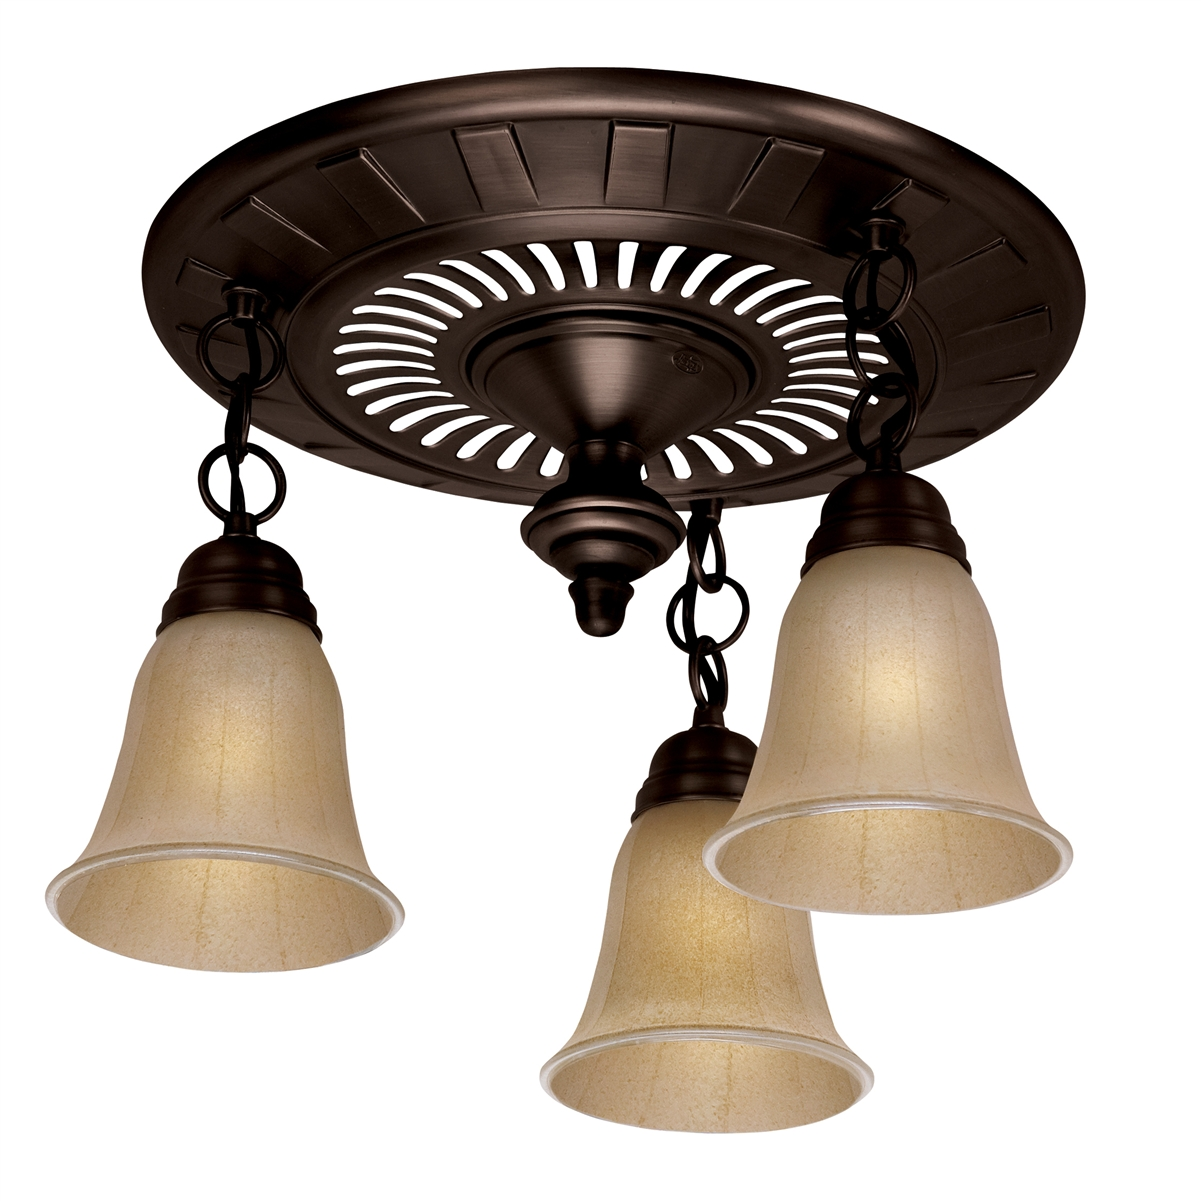 Garden district 3 light bathroom fan oil rubbed bronze 80707 aloadofball Choice Image